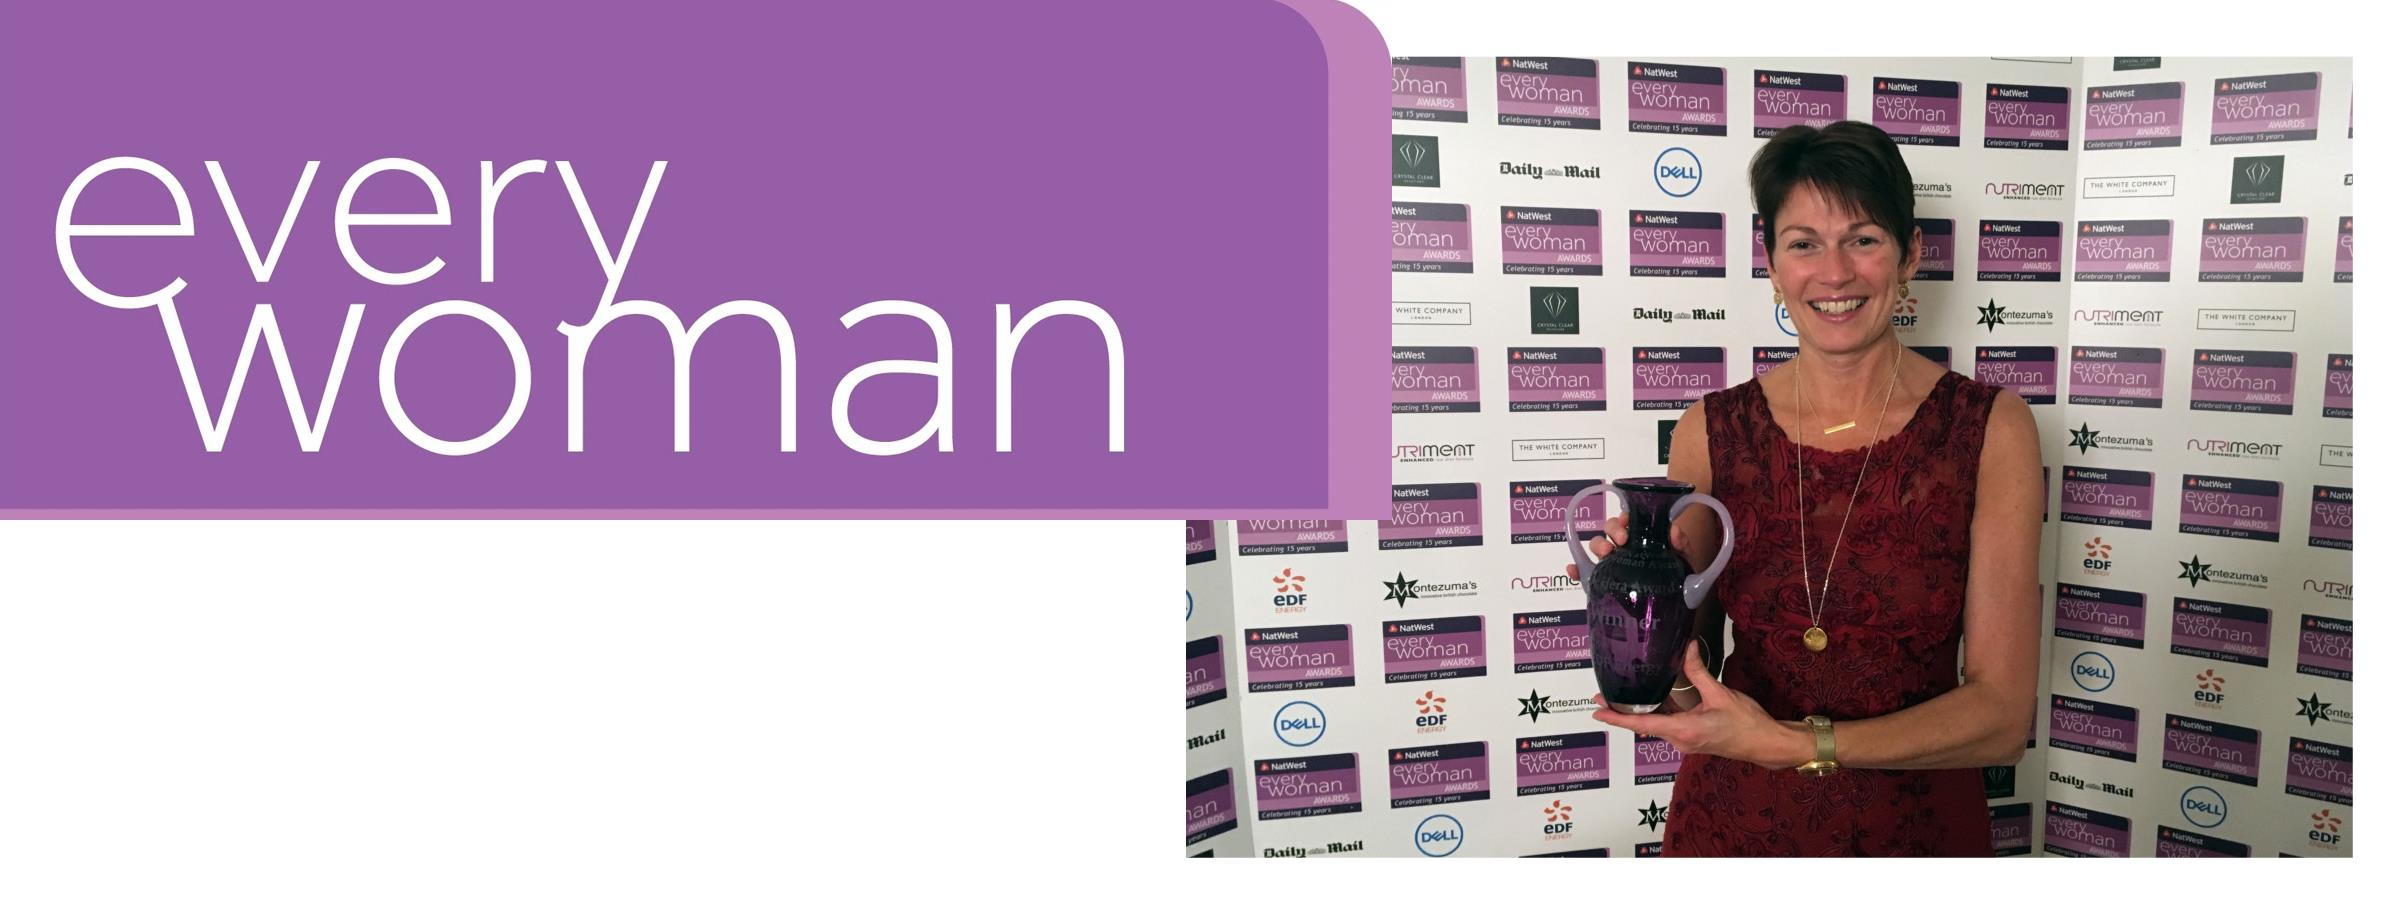 Jo Stroud wins the 'NatWest Everywoman' Award